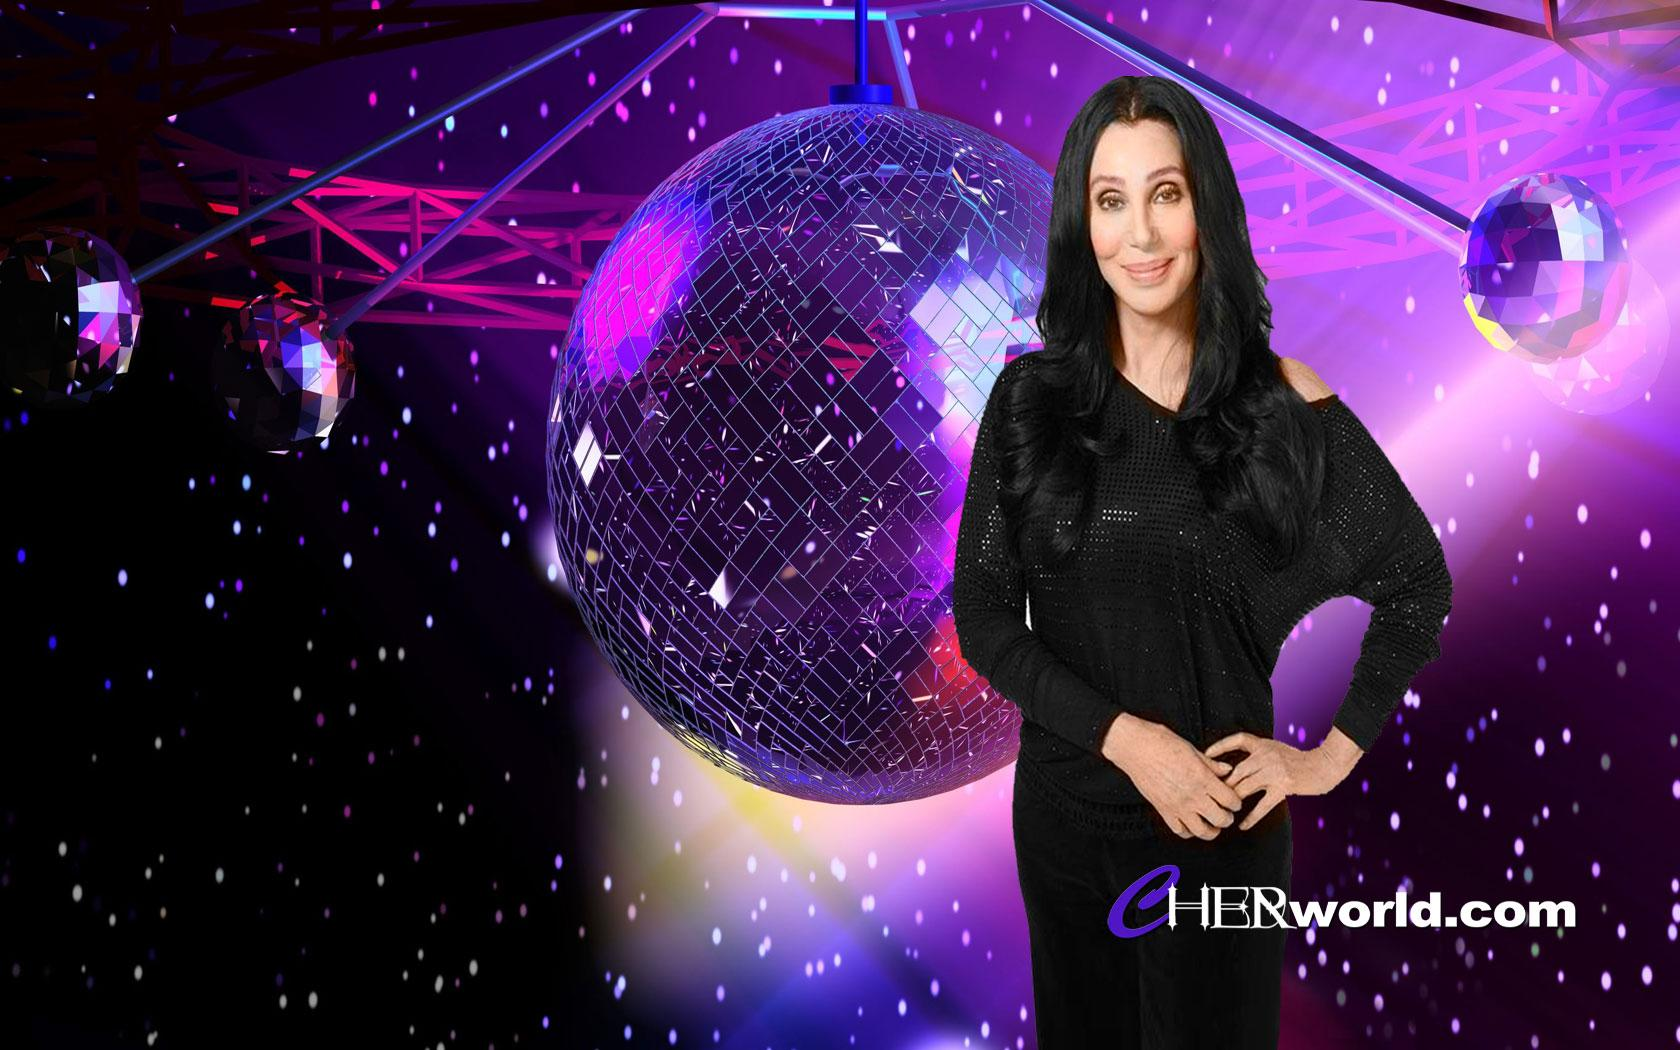 Cher Wallpapers, Desktop Backgrounds and Themes